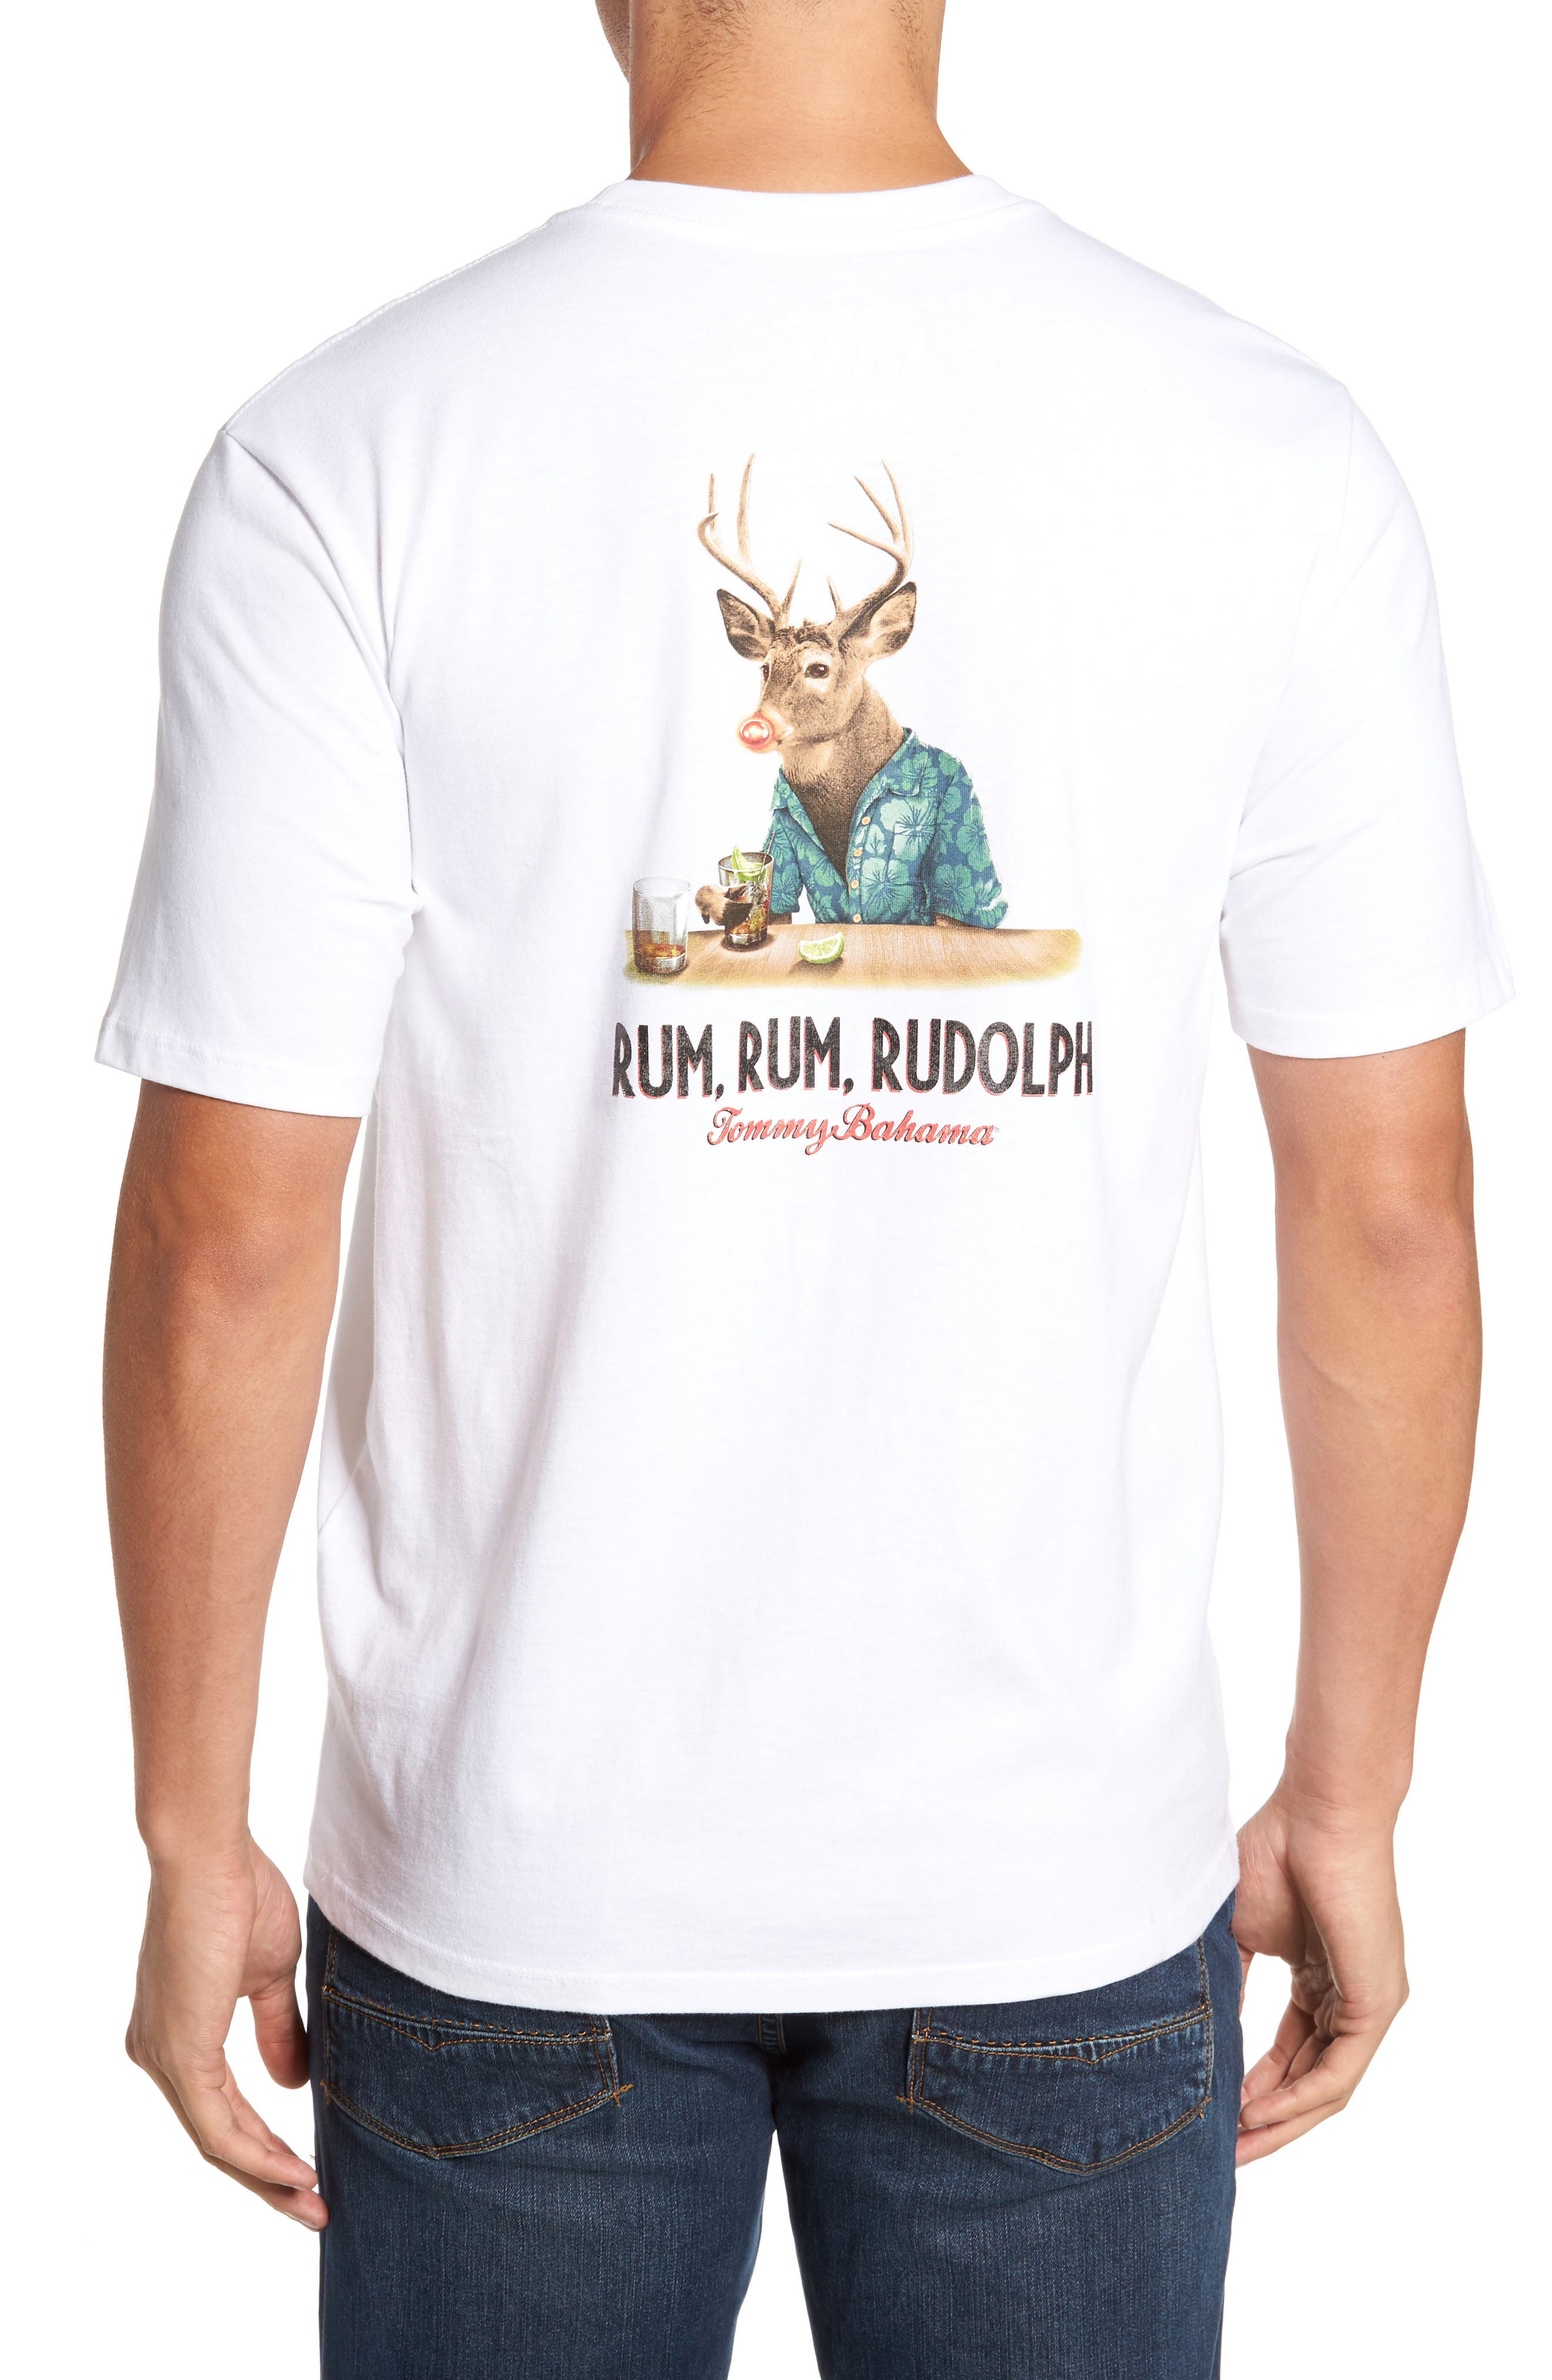 Rum Rum Rudolph T-Shirt,                         Main,                         color, White